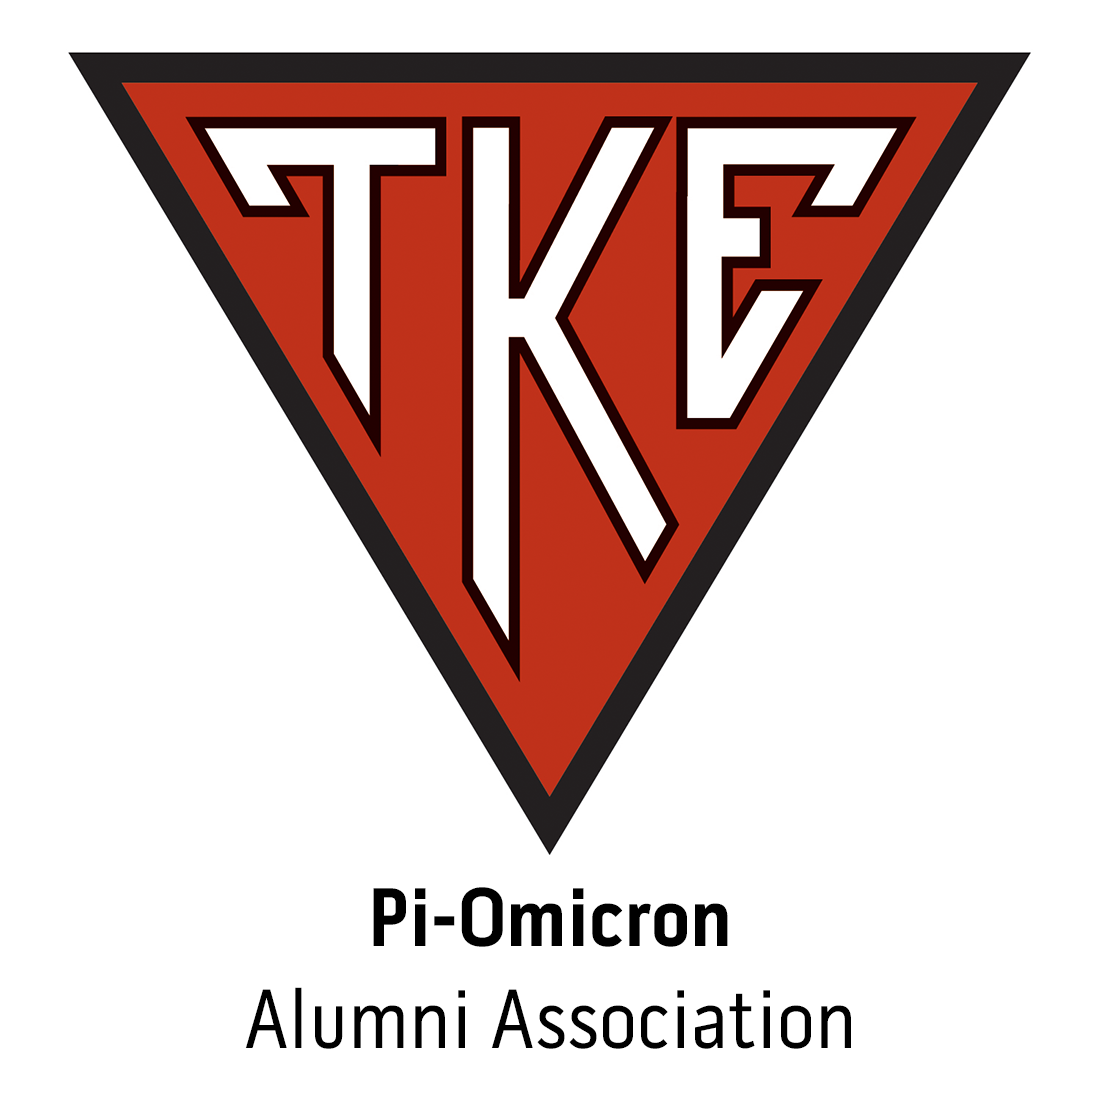 Pi-Omicron Alumni Association for Northern Kentucky University